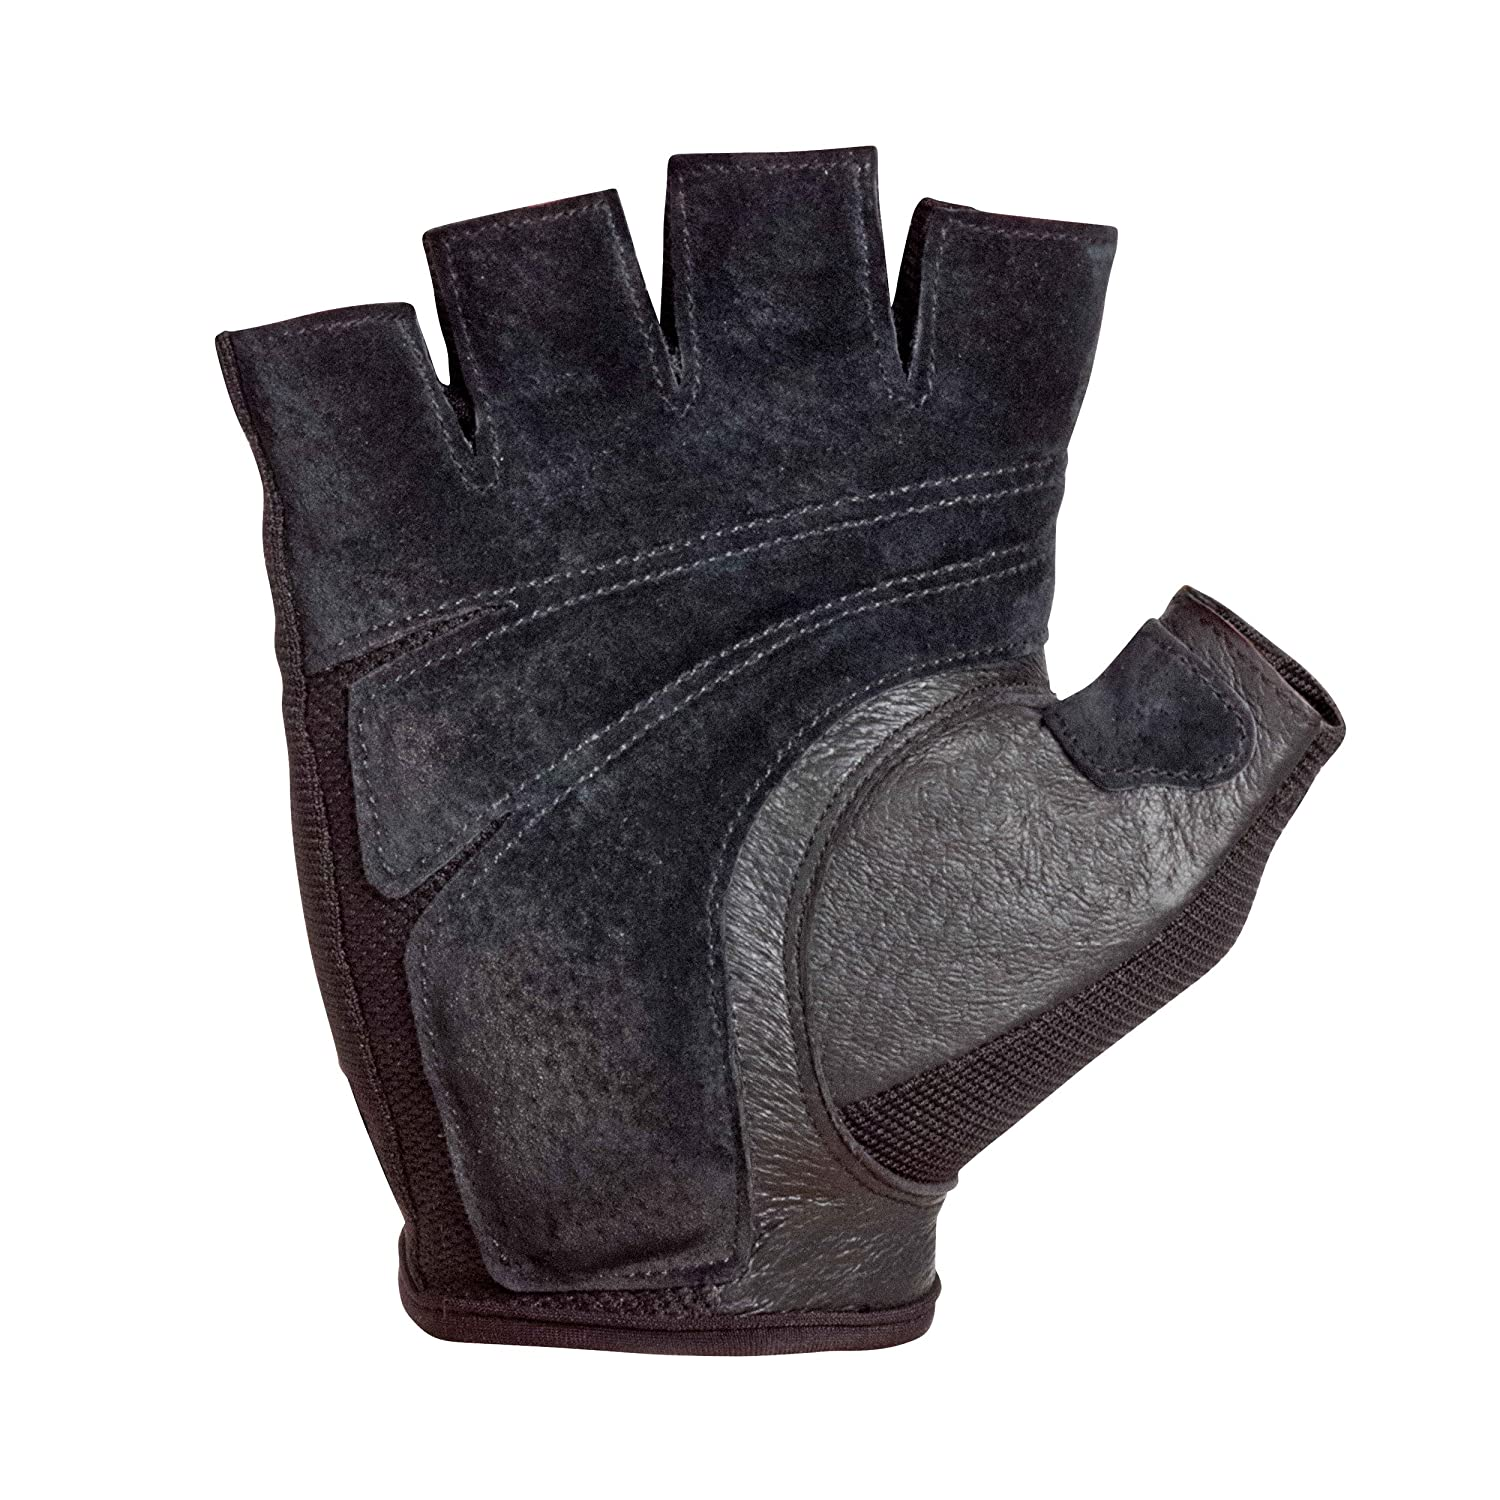 Fitness Gloves 1 Pair High Strength Weight Lifting Gym Glove Exercise Sport Fitness Sports Riding Weight Lifting Leather Gloves Choice Materials